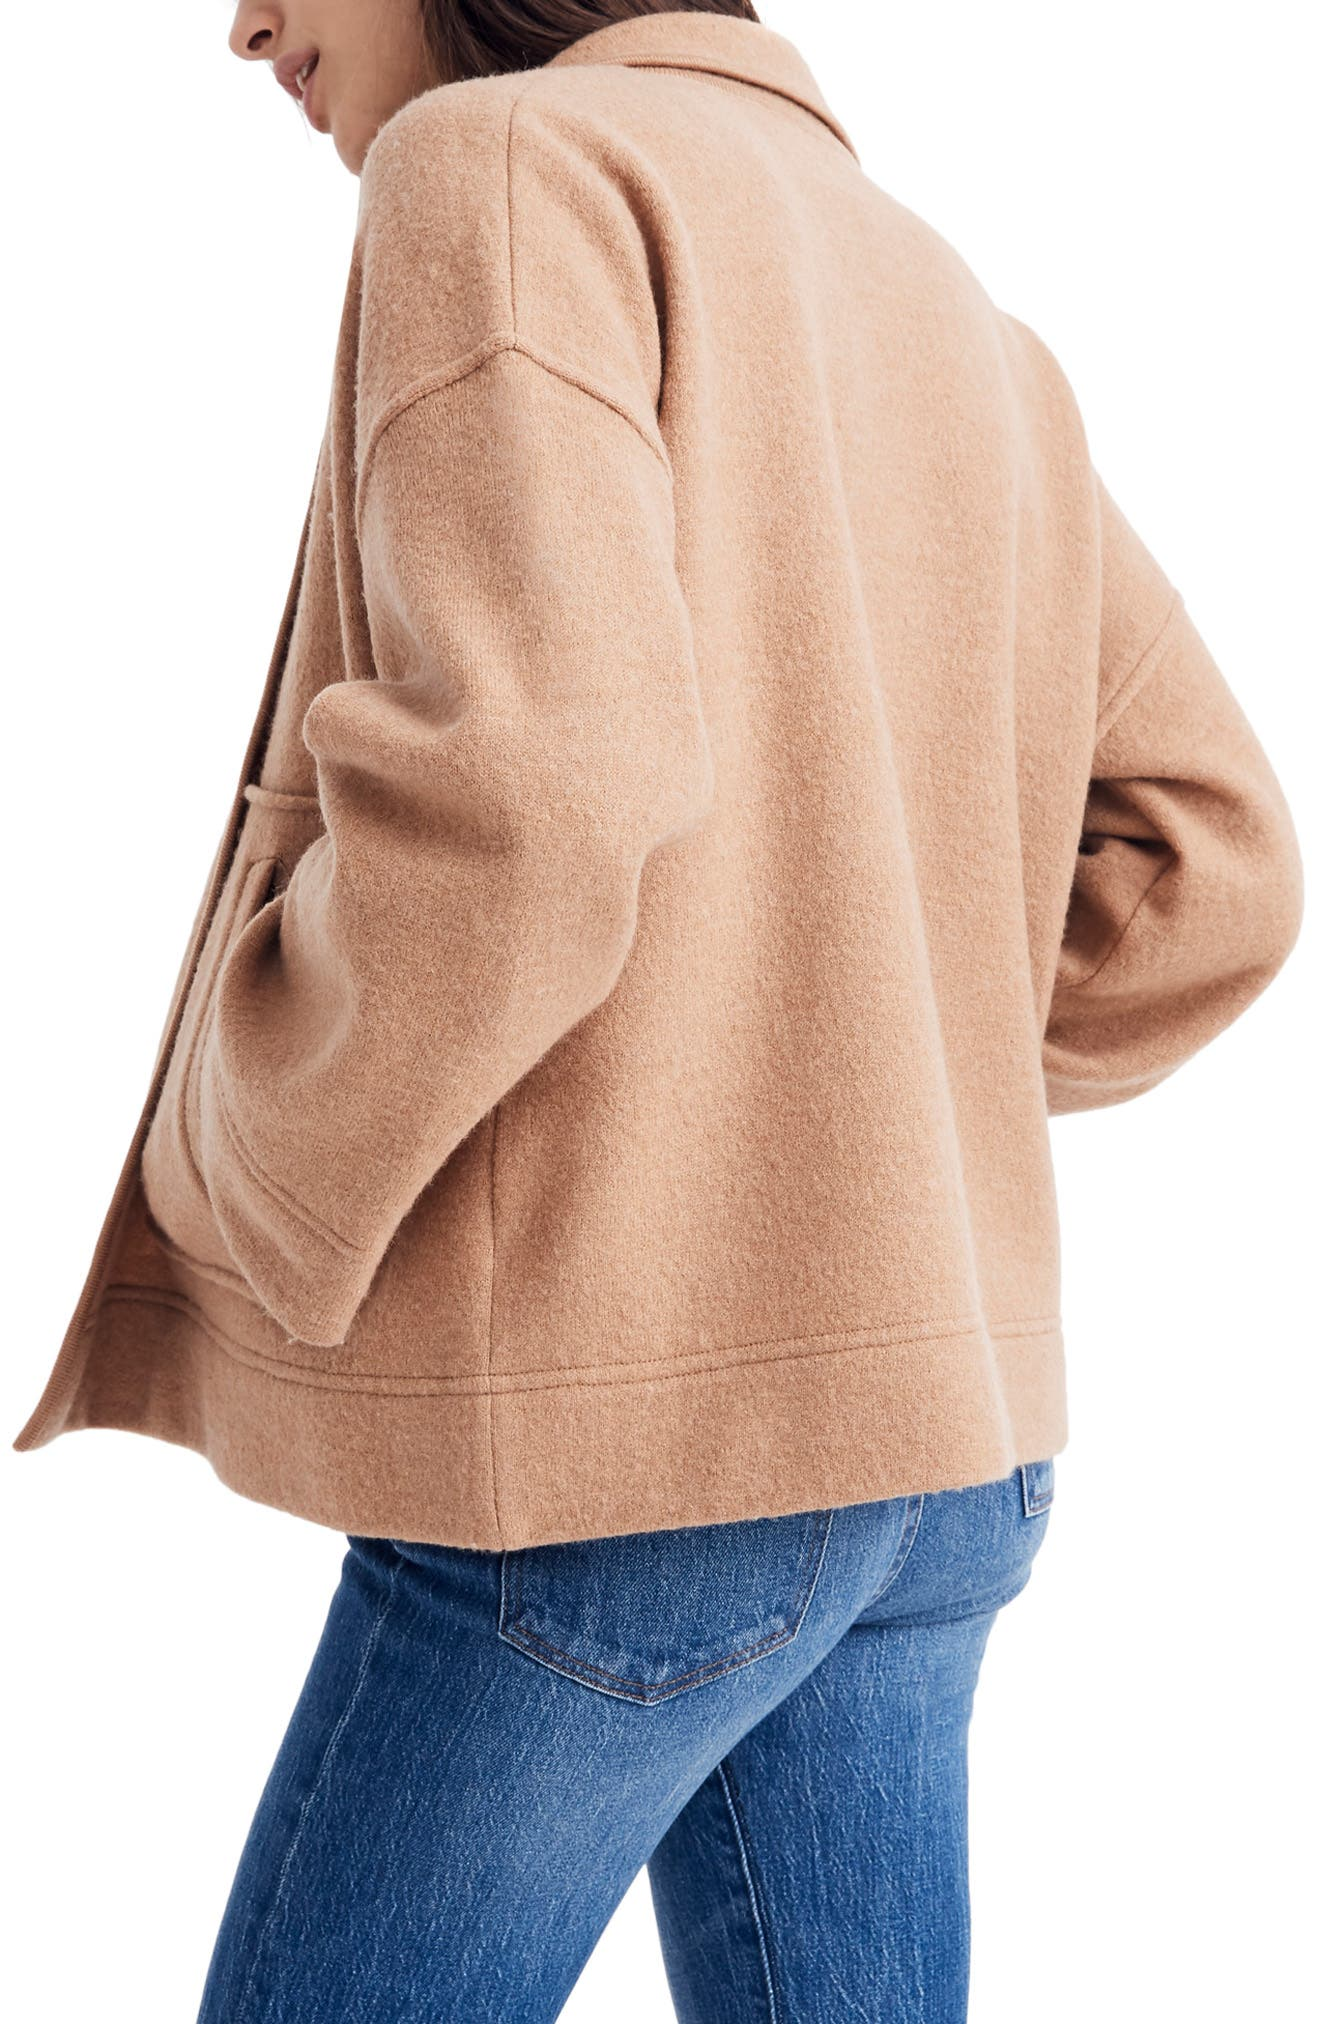 MADEWELL,                             Lisbon Sweater Jacket,                             Alternate thumbnail 2, color,                             HEATHER FAWN